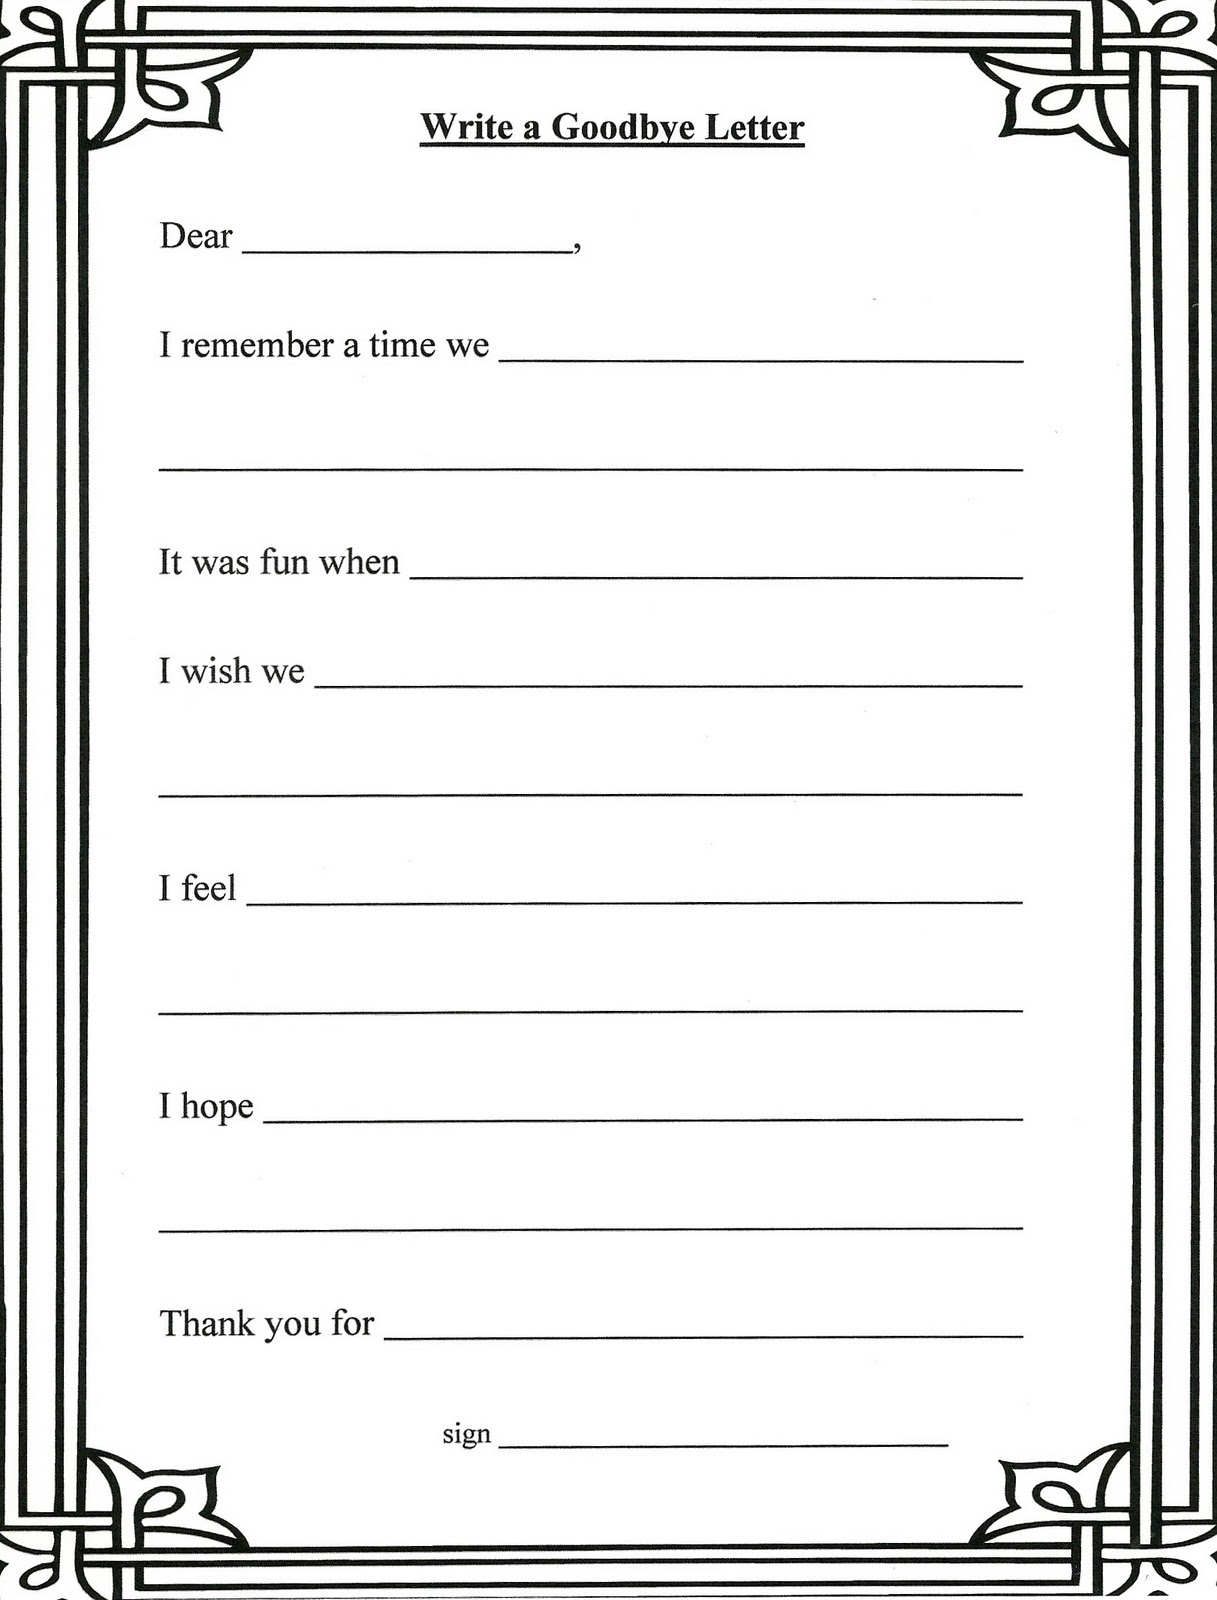 Grief and loss worksheets pdf